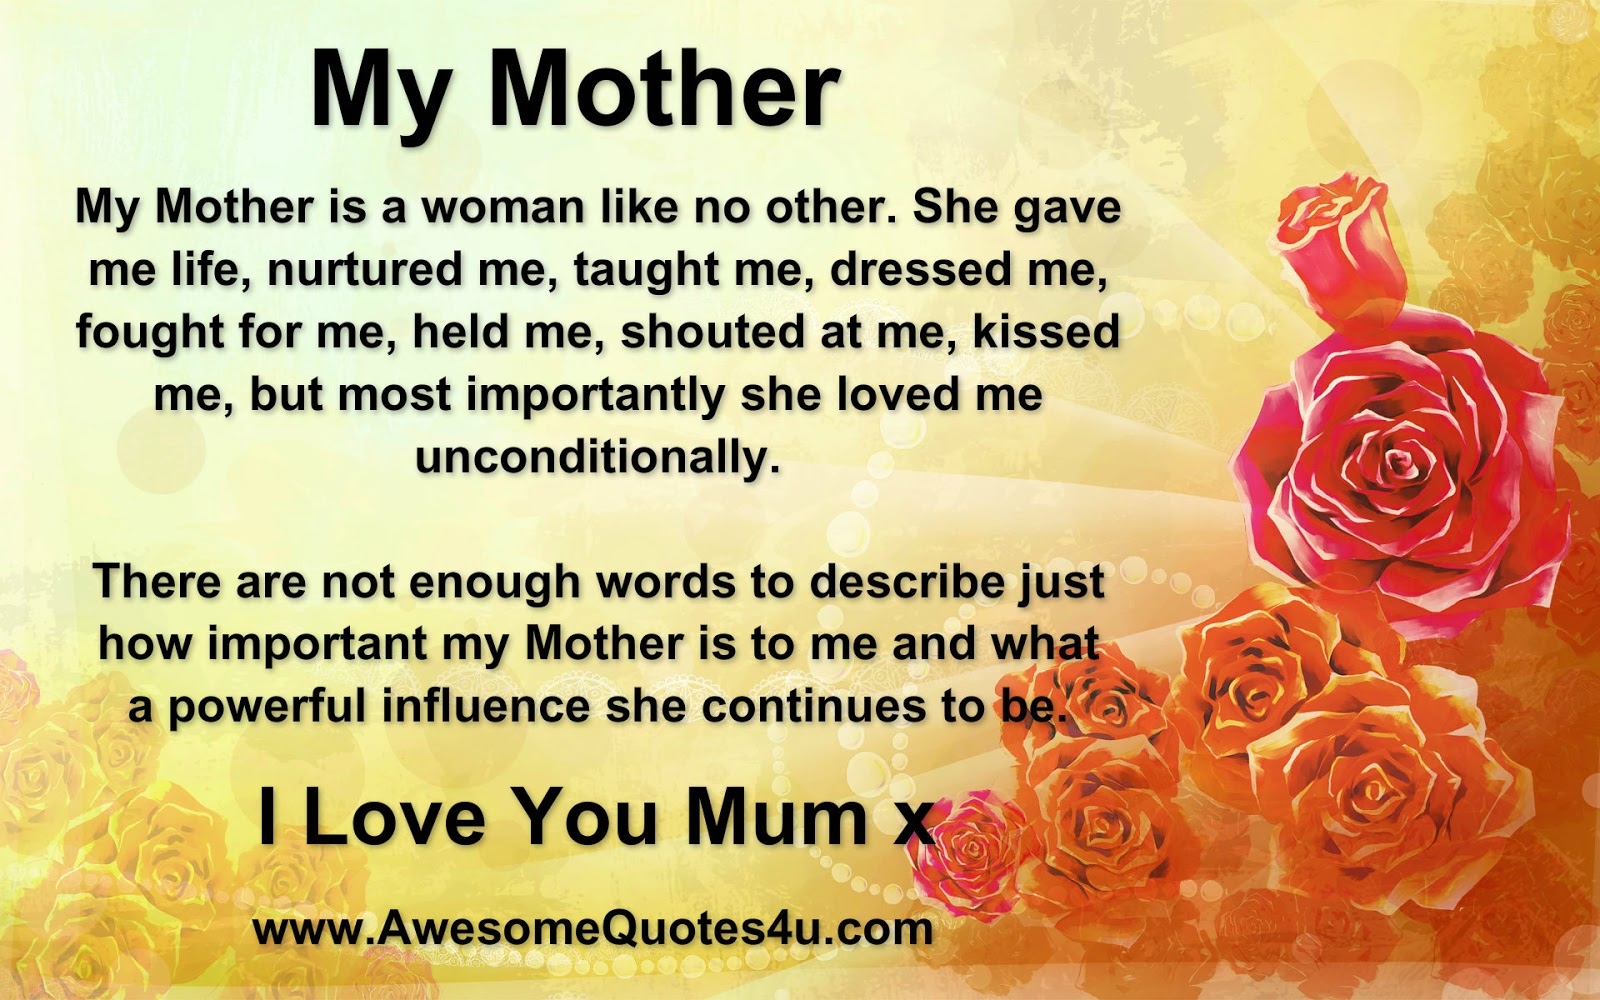 Awesome Quotes: I Love You MumxI Love You Mom In Spanish